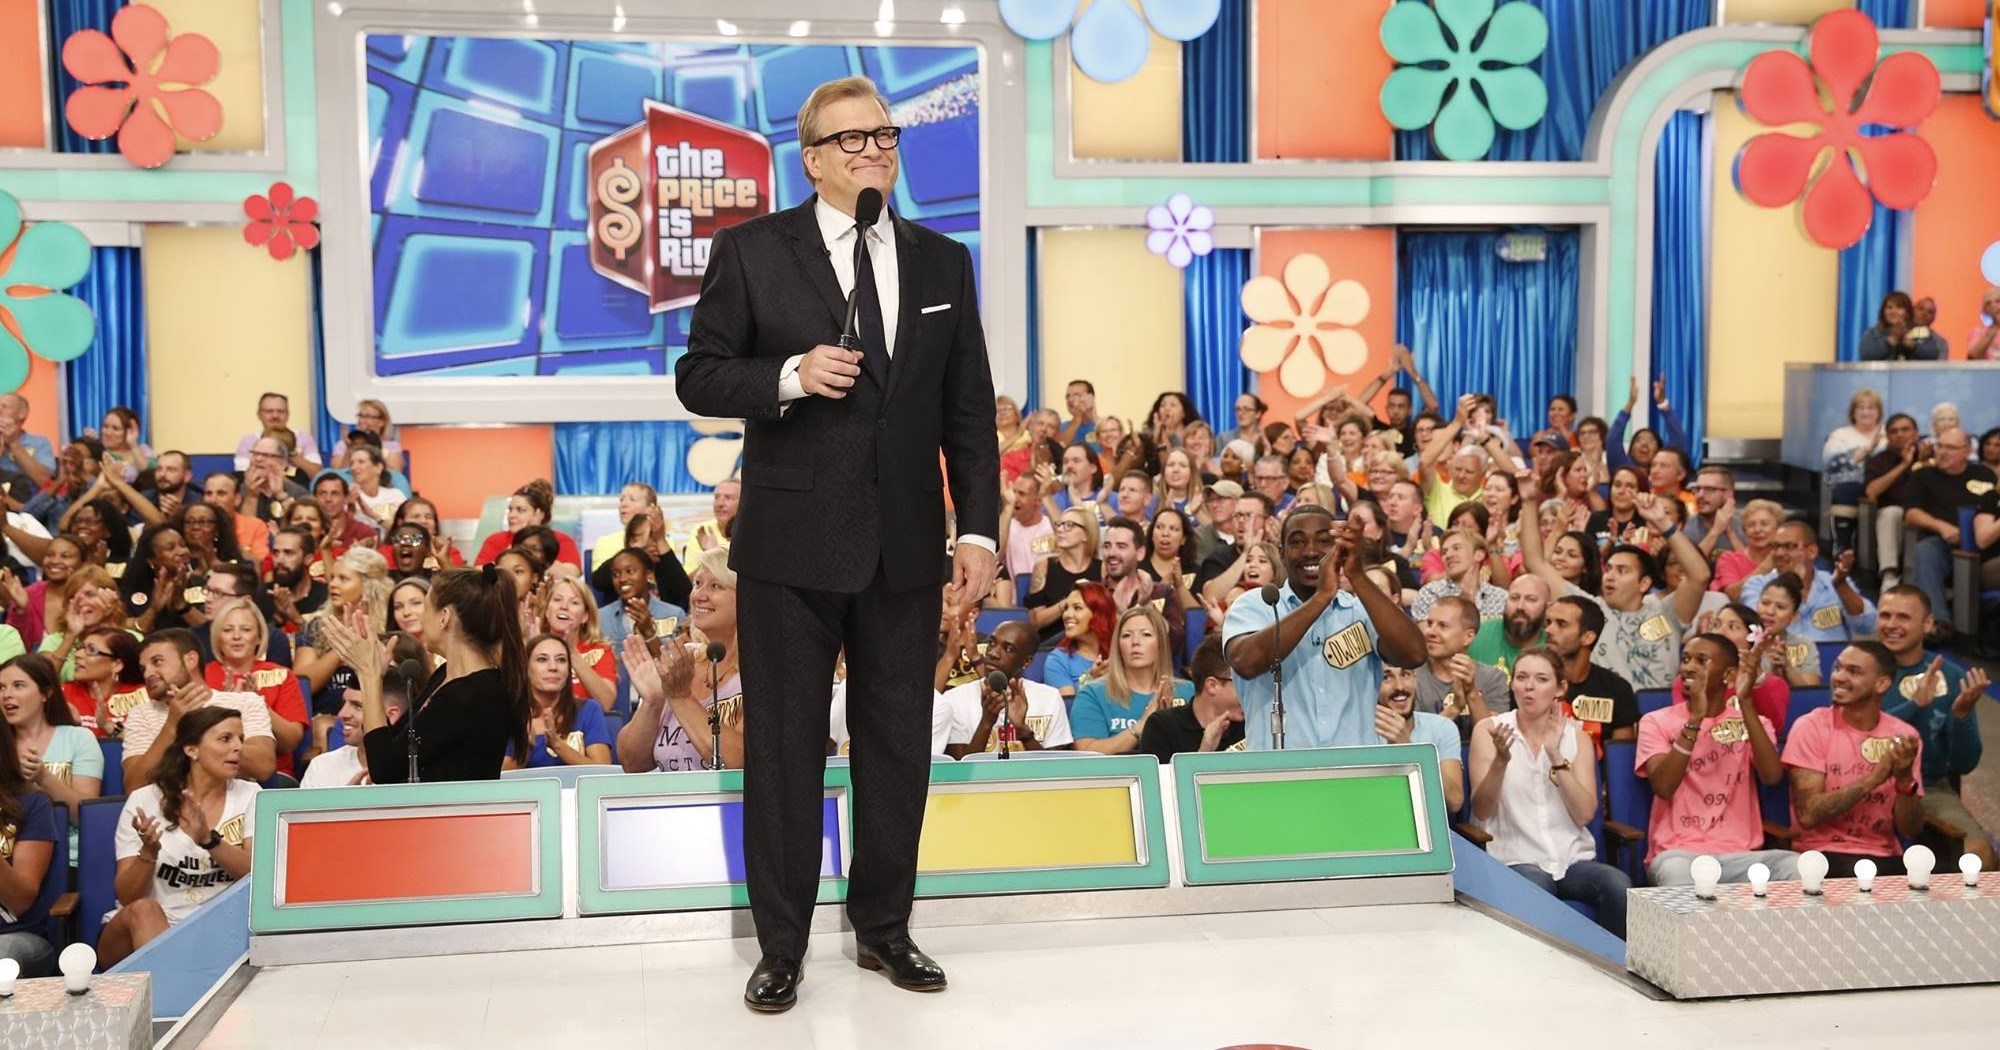 The Price Is Right gives away Showcase Showdown trip to this unexpected Canadian city